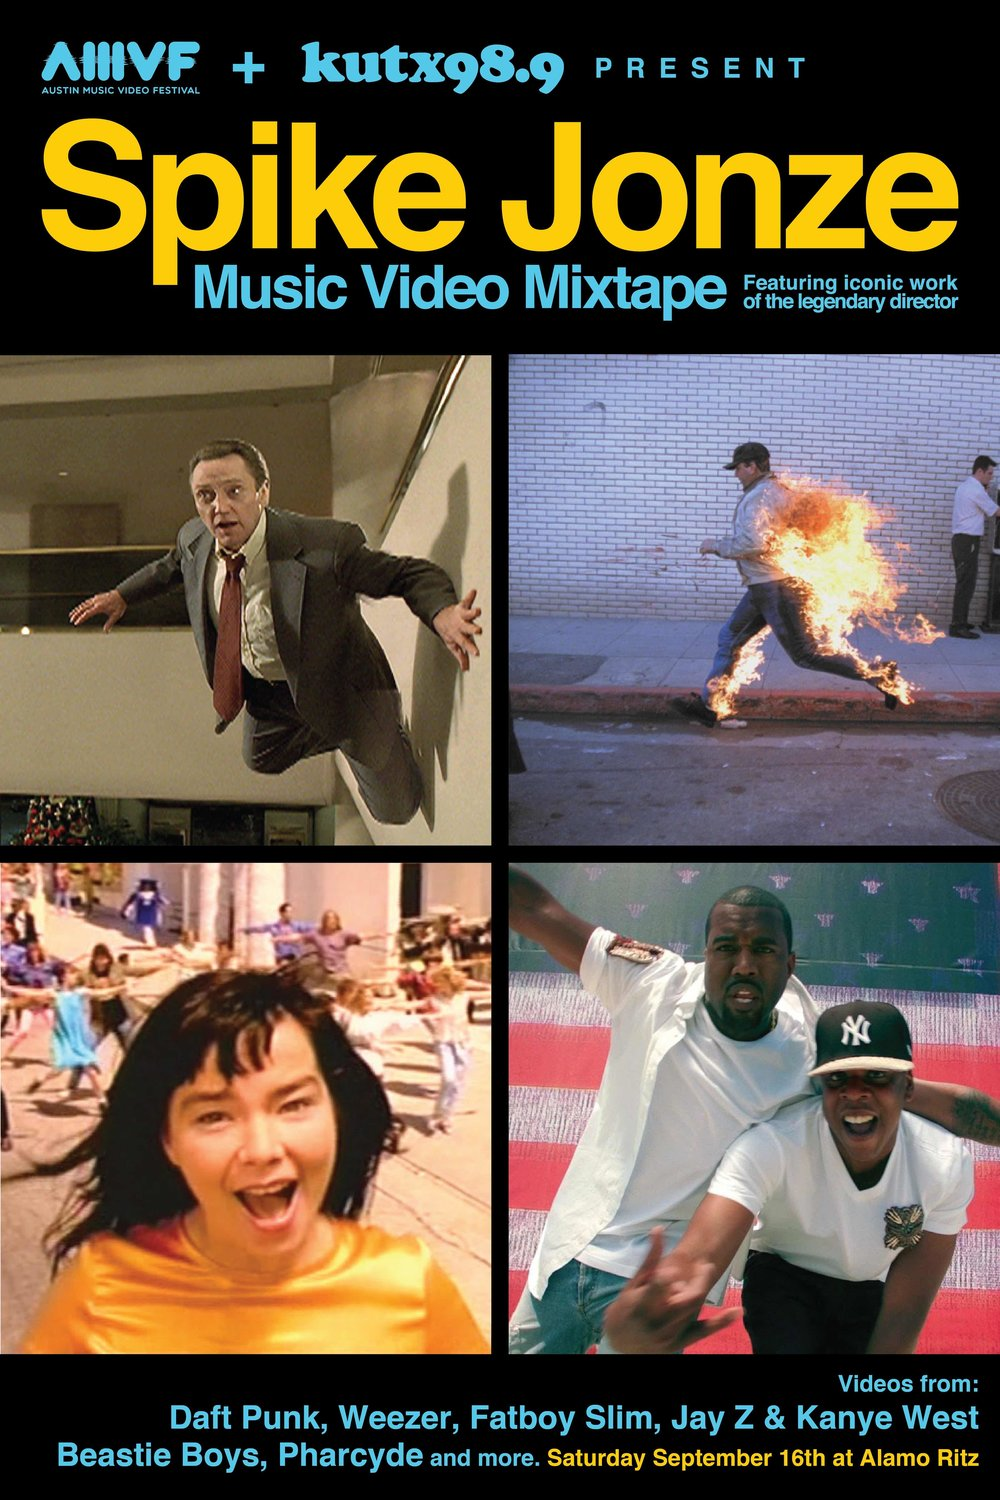 SPIKE JONZE MUSIC VIDEO MIXTAPE